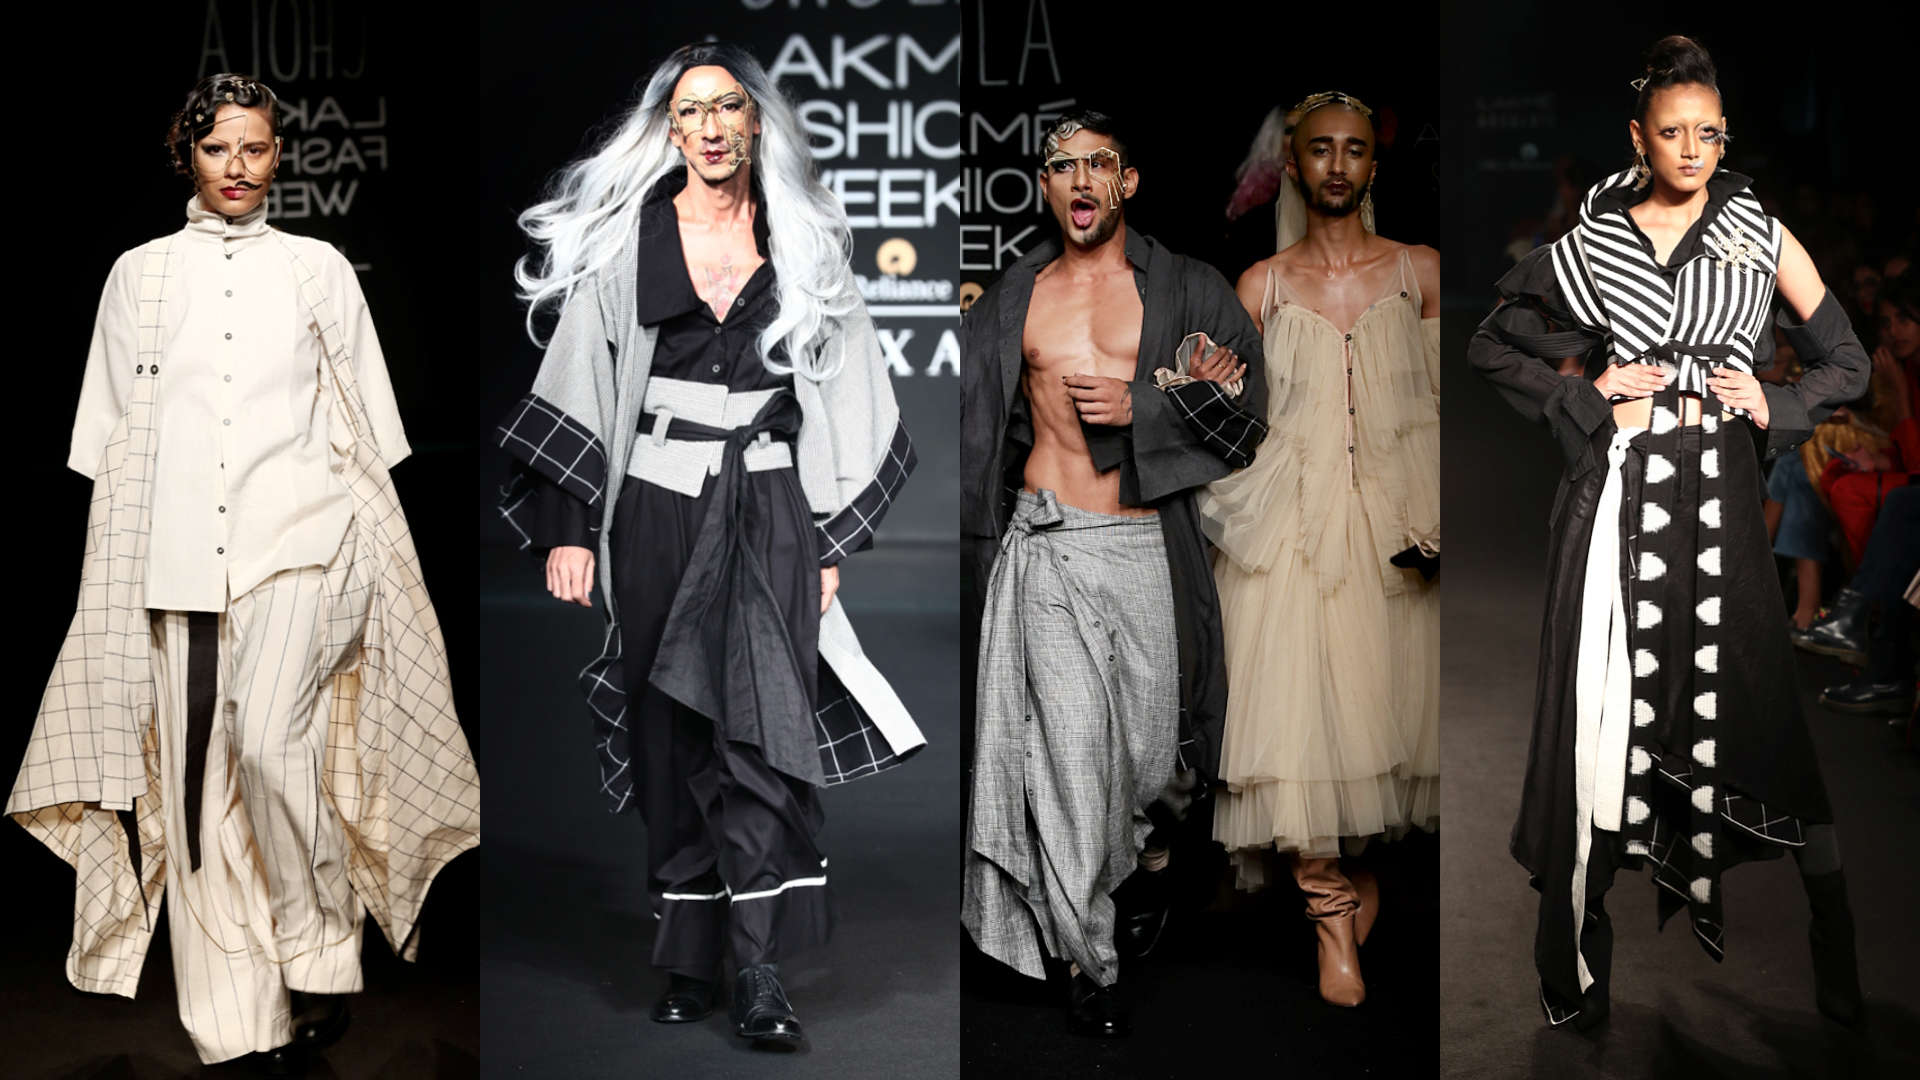 97e752c77b885f Lakme Fashion Week Day 1: Prateik Babbar turns into a drag queen for Chola  the Label, Watch Videos Online | MissKyra Videos